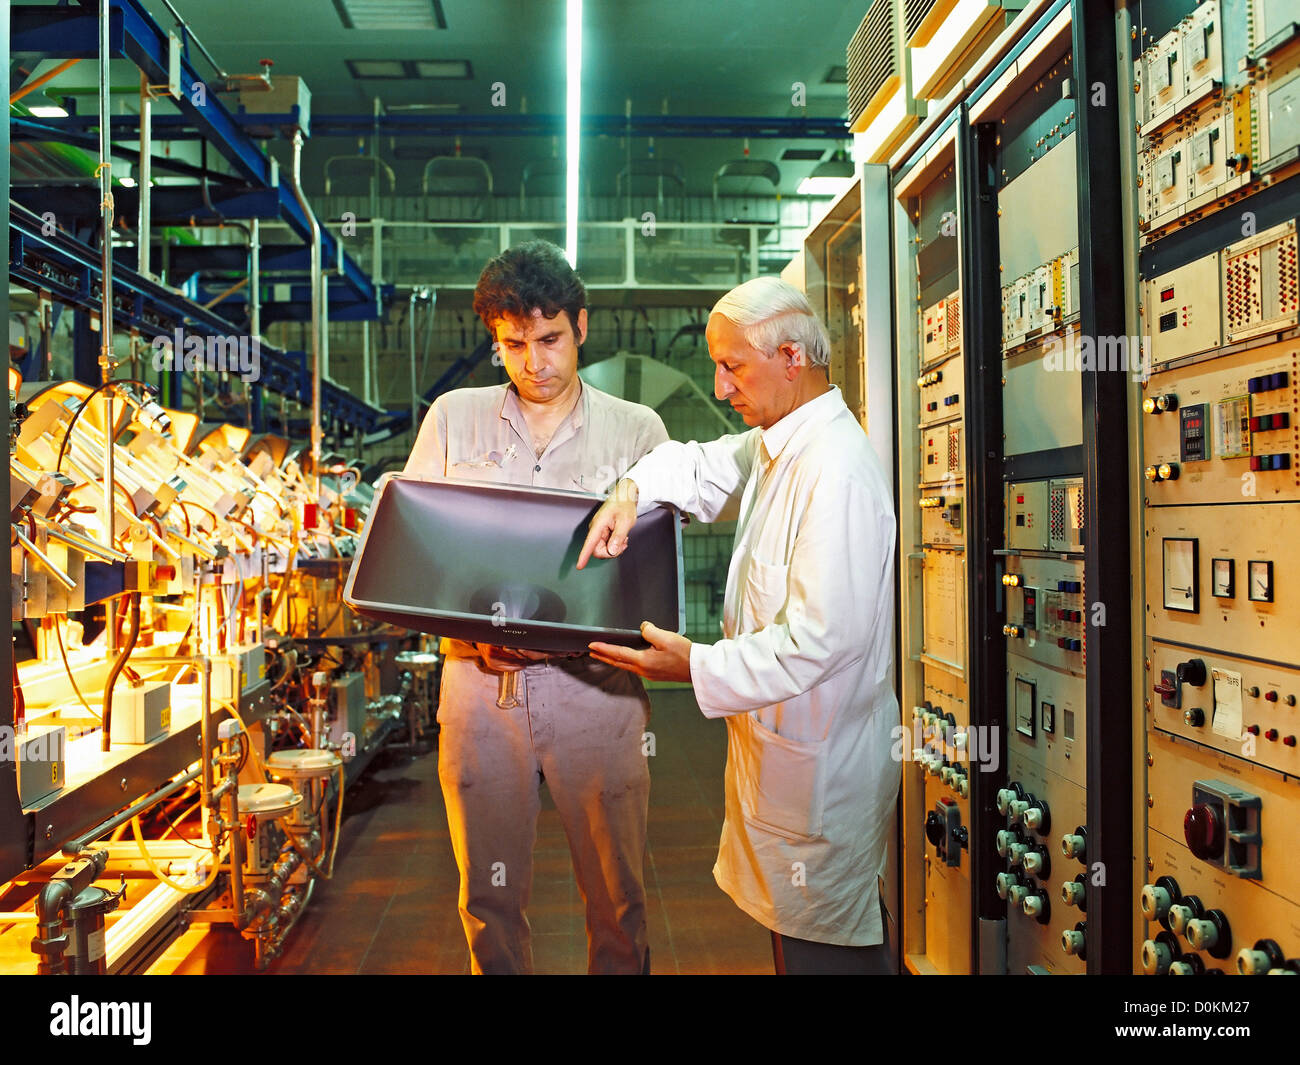 Technicians discussing manufacturing issues at a glass manufacturing plant. Stock Photo